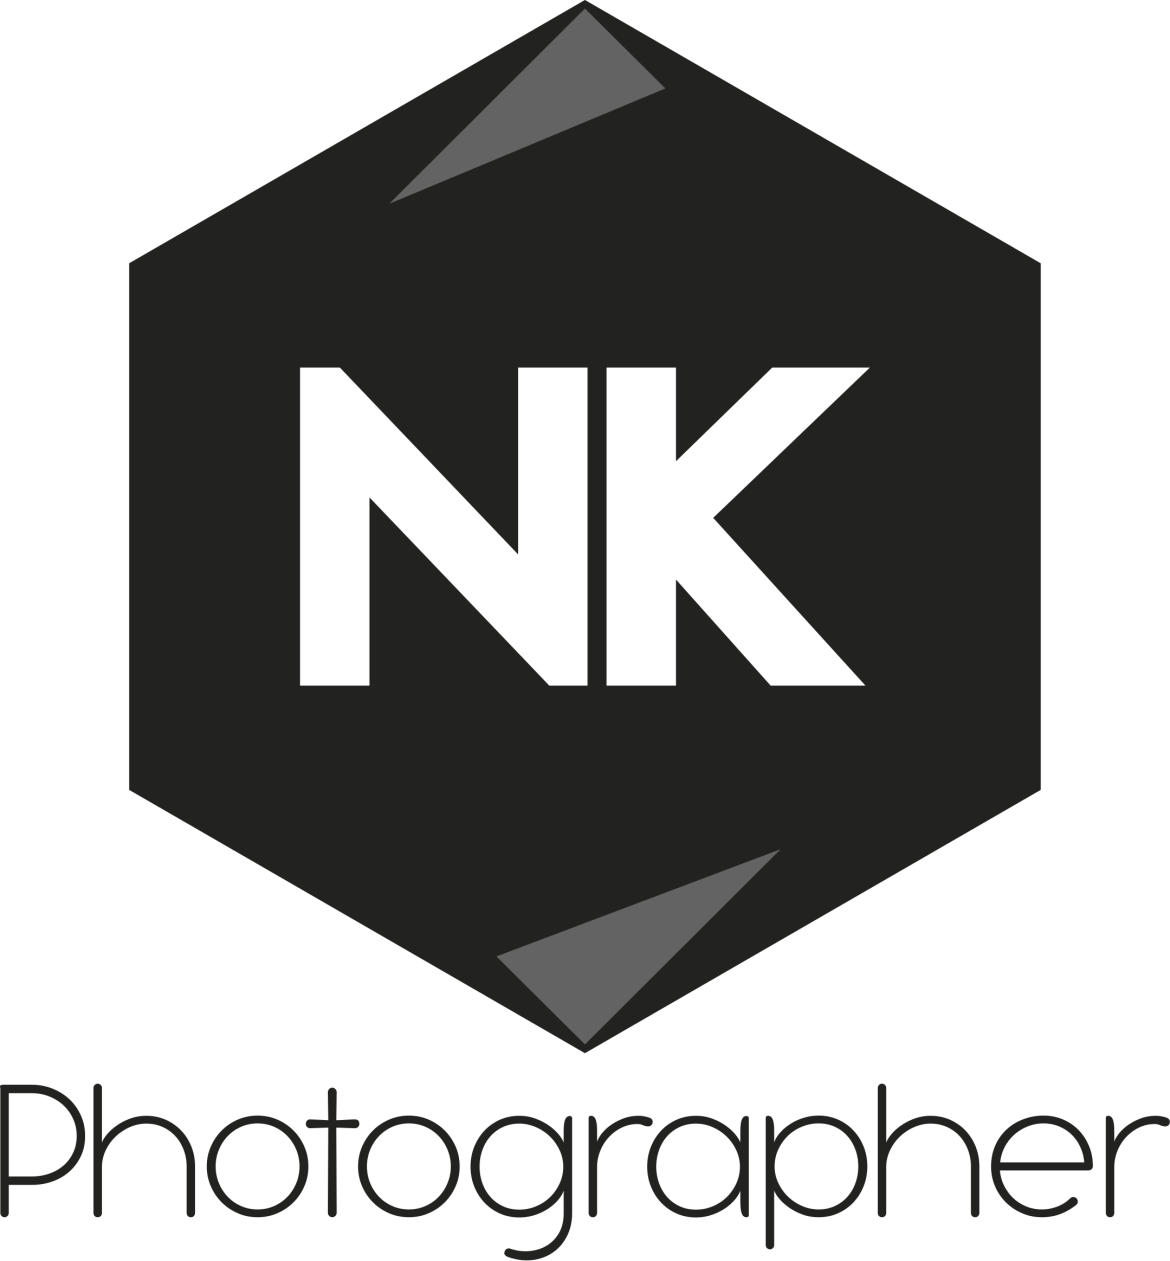 NK—Photographer—logo